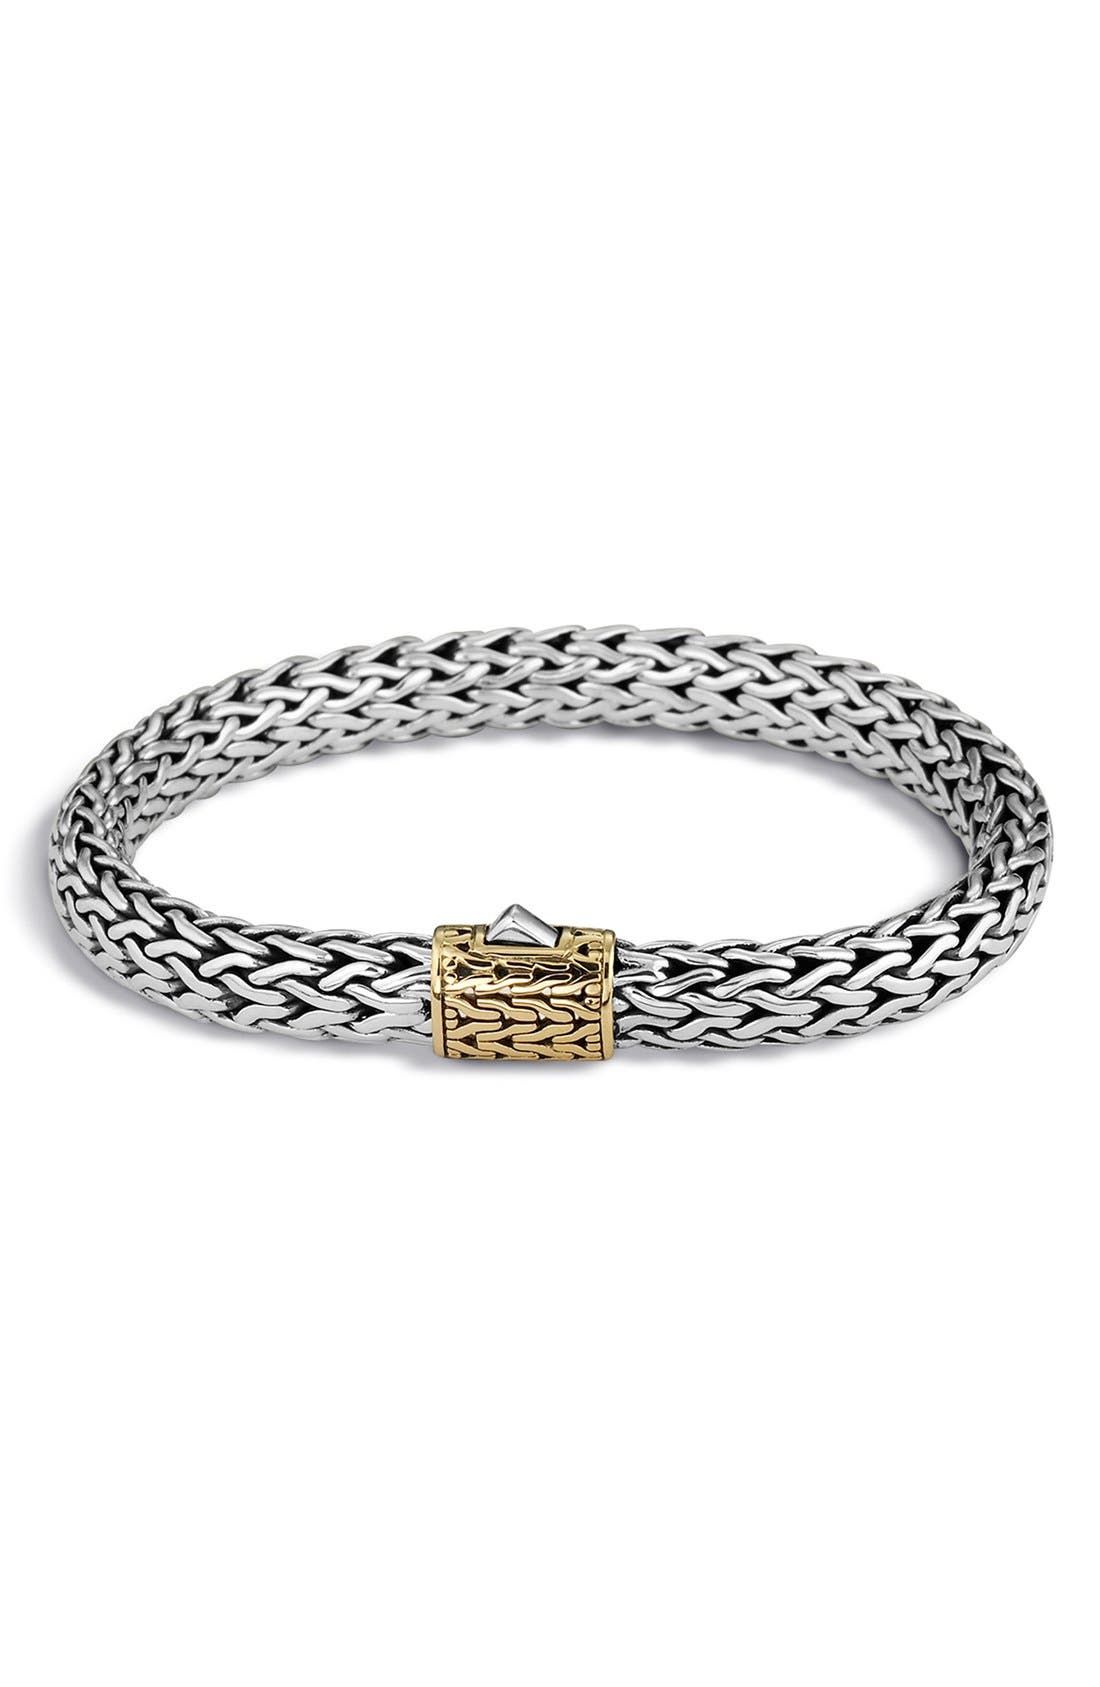 'Classic Chain' Medium Bracelet,                             Main thumbnail 1, color,                             SILVER/ GOLD